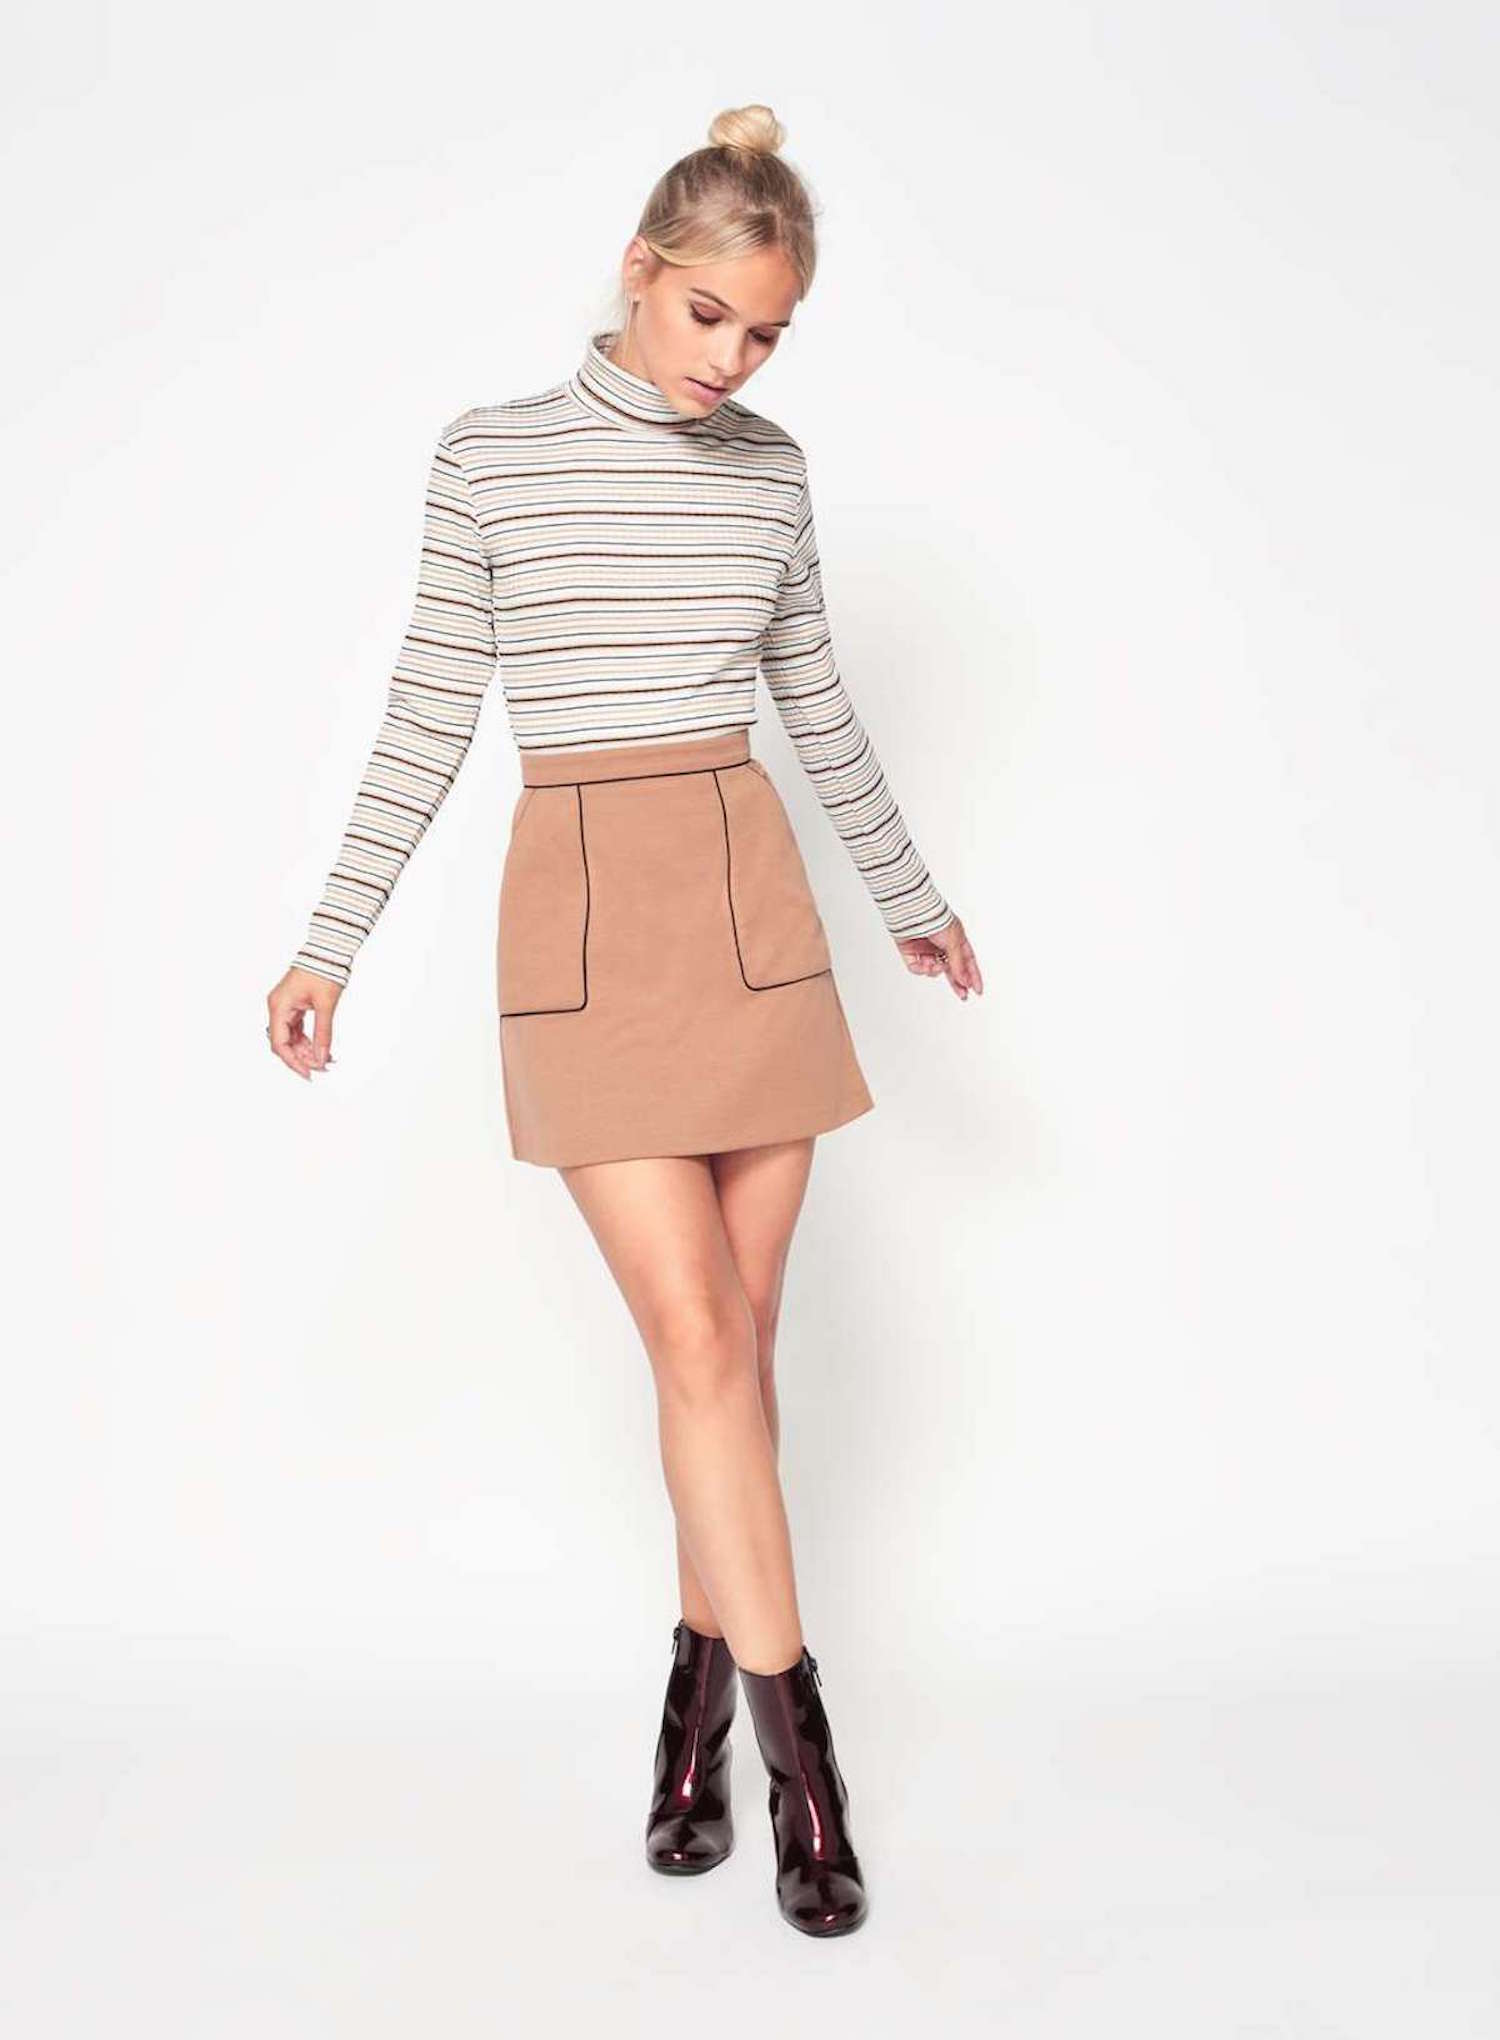 Striped top and mini skirt